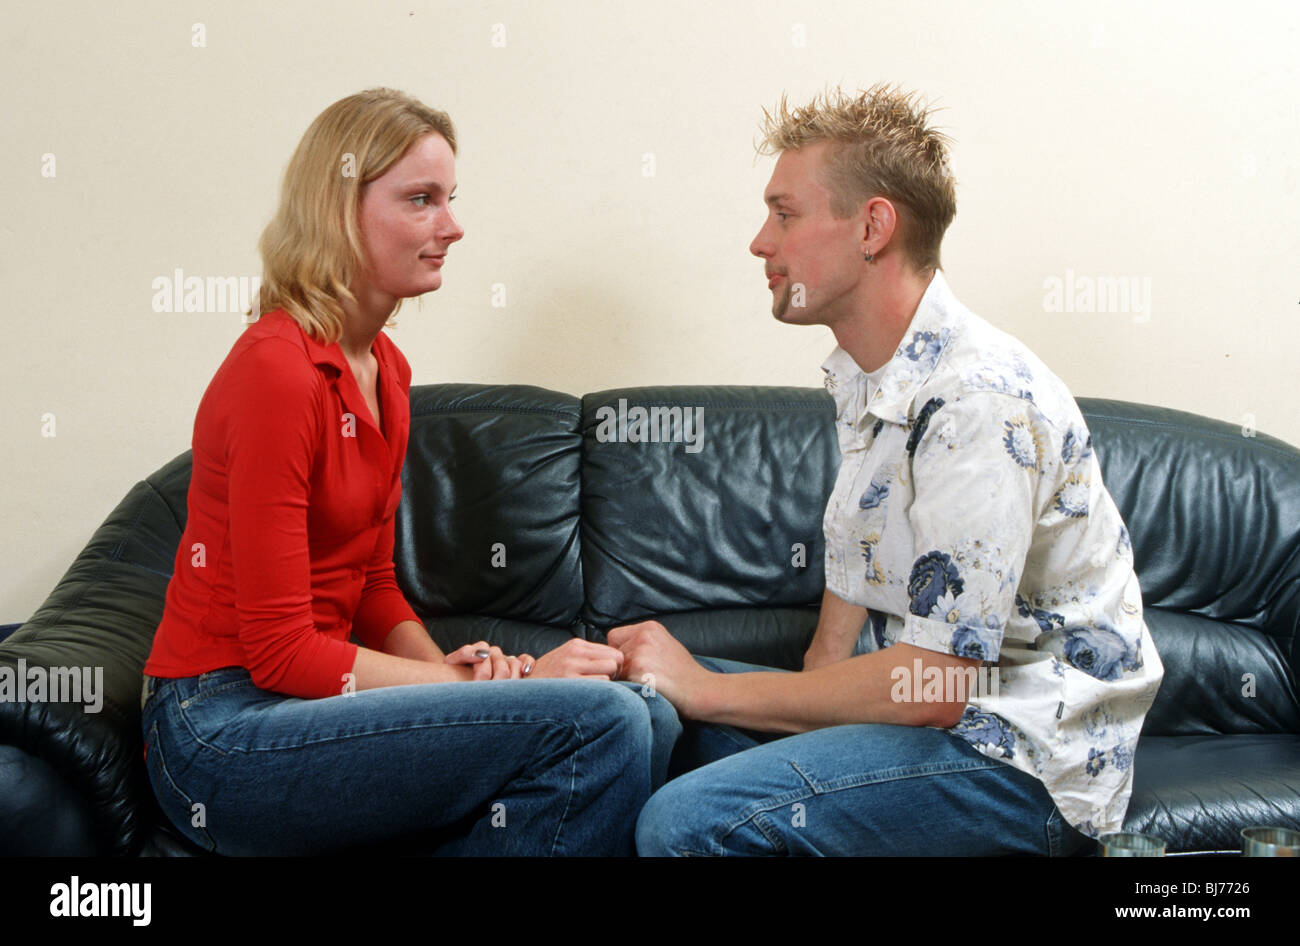 Couple having a talk on the couch at home - SerieCVS500202167 Stock Photo